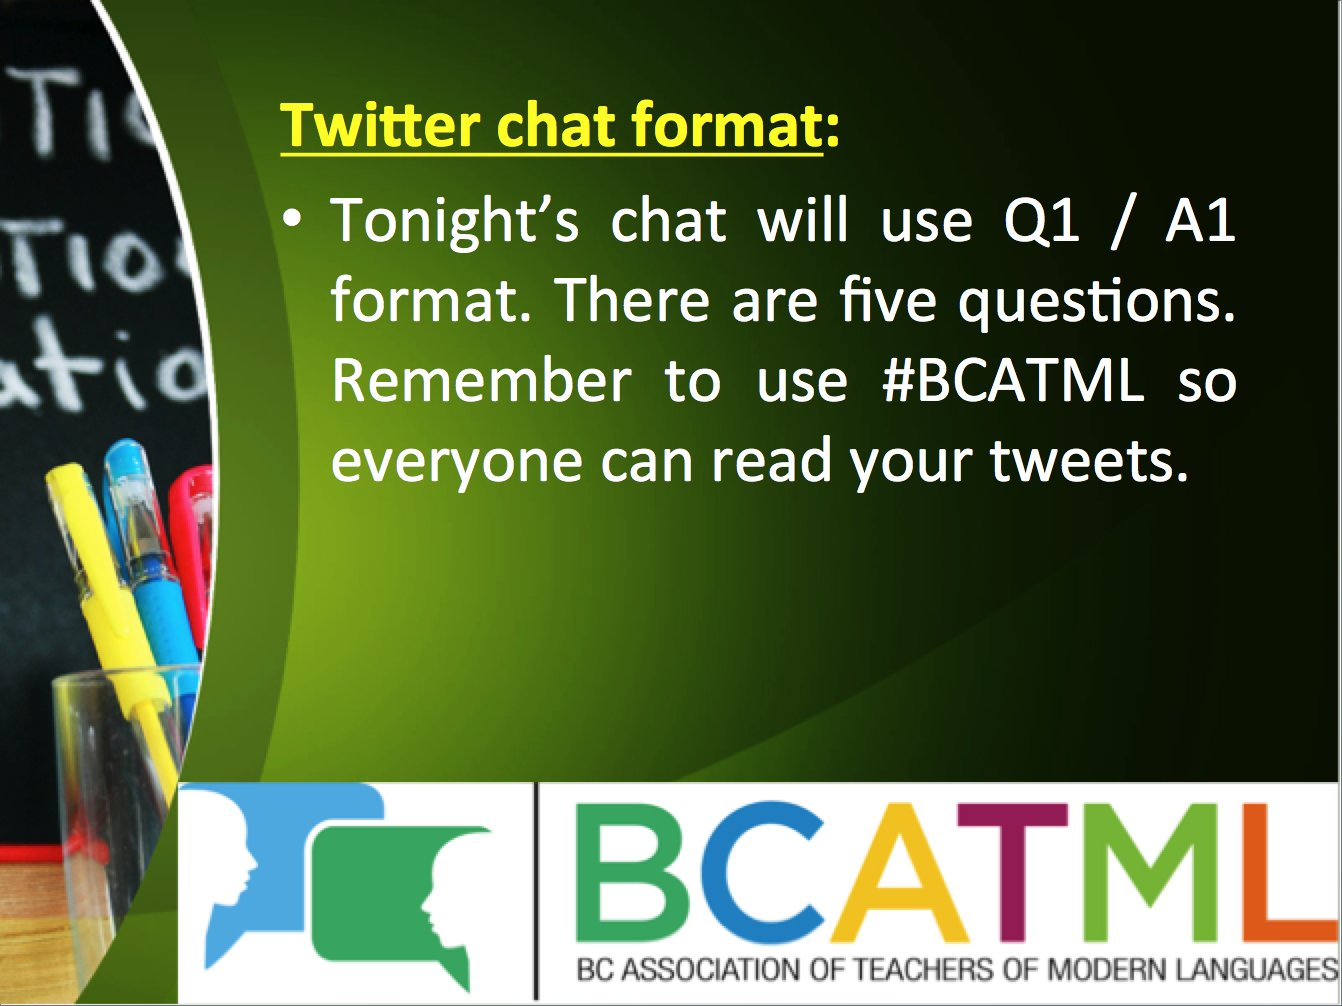 Tonight's chat will use Q1 / A1 format. There are five questions. Remember to sue #BCATML so we can all read your tweets! https://t.co/0qfhS2on4U